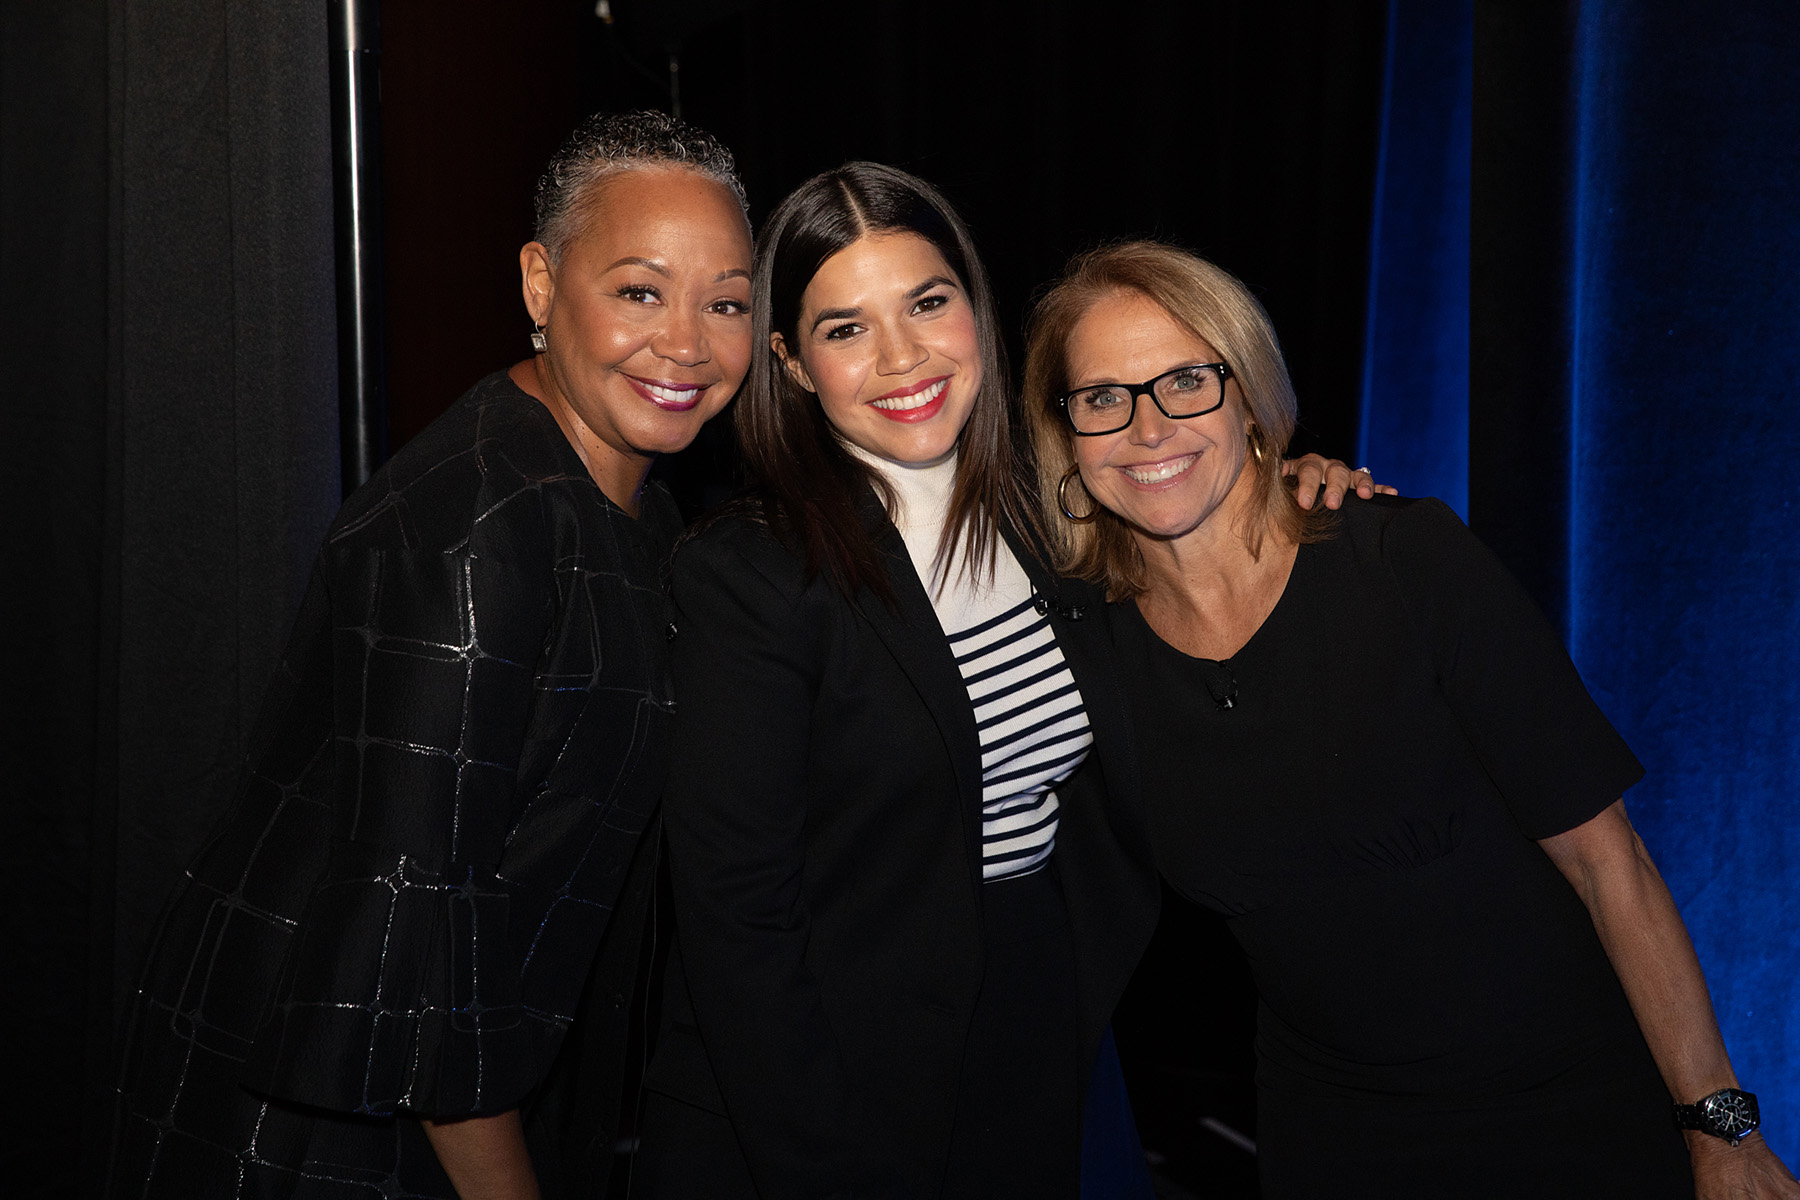 Lisa Borders, America Ferrera, and Katie Couric backstage